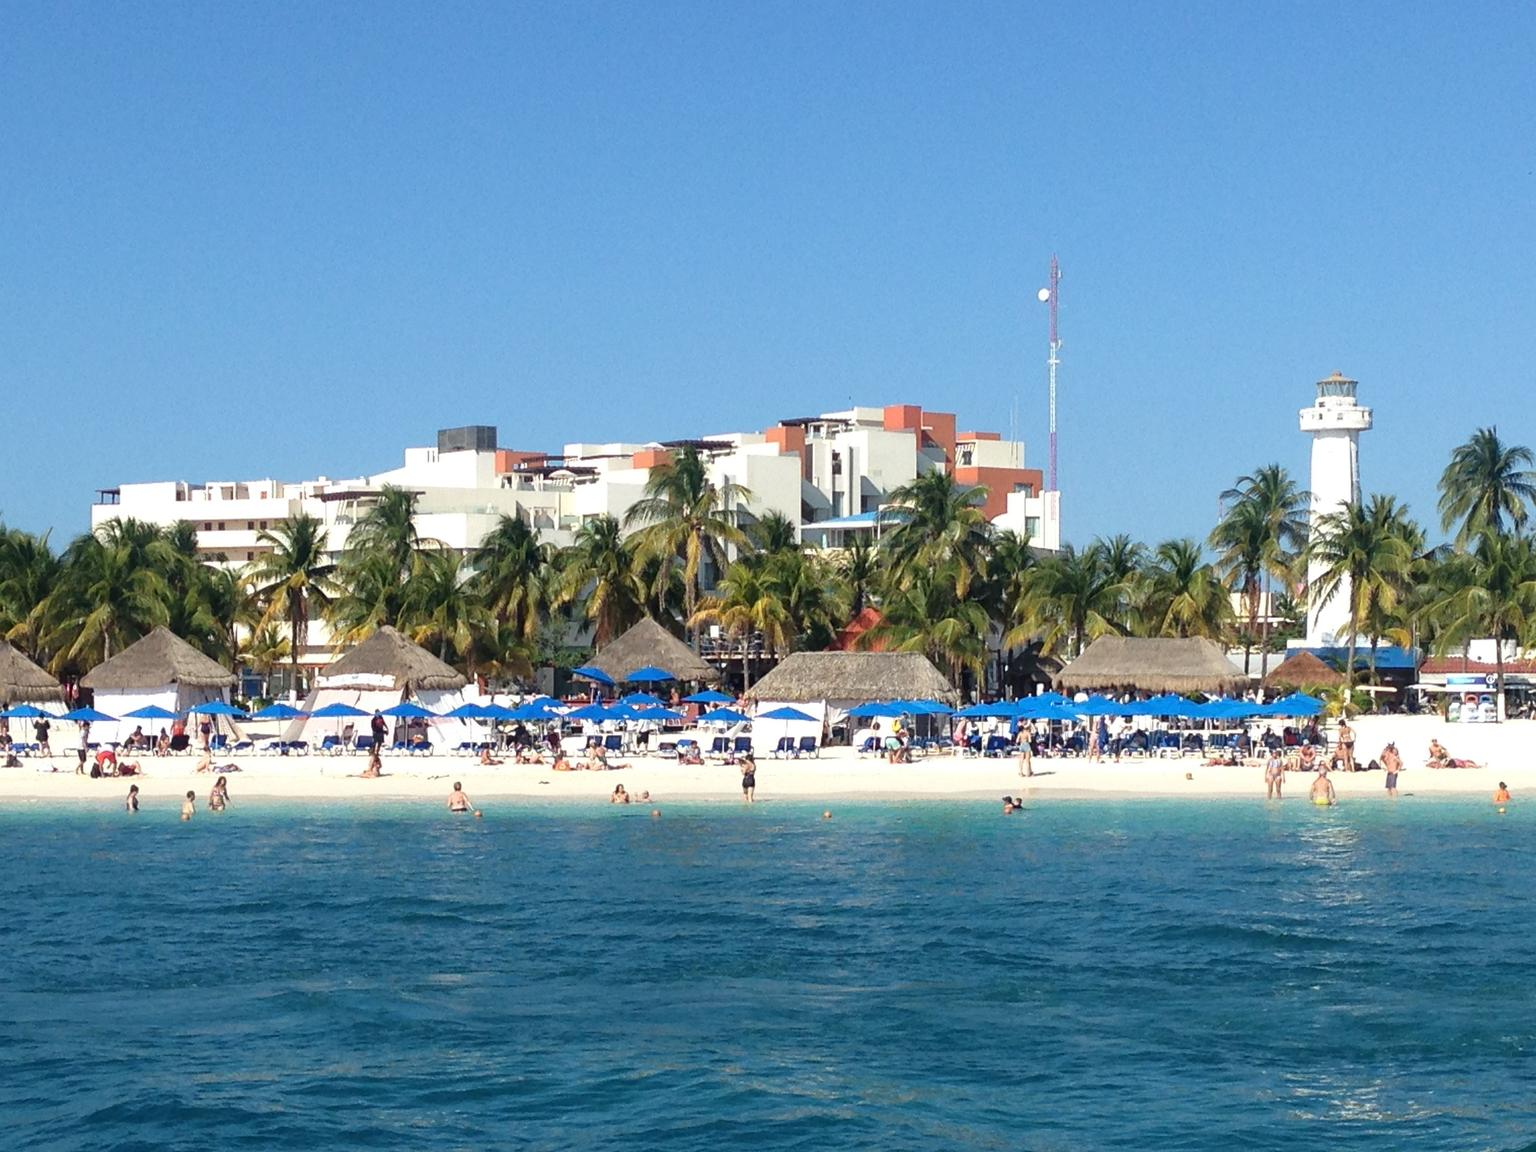 Sightseeing, Snorkeling, and Dancing Catamaran Cruise from Cancun